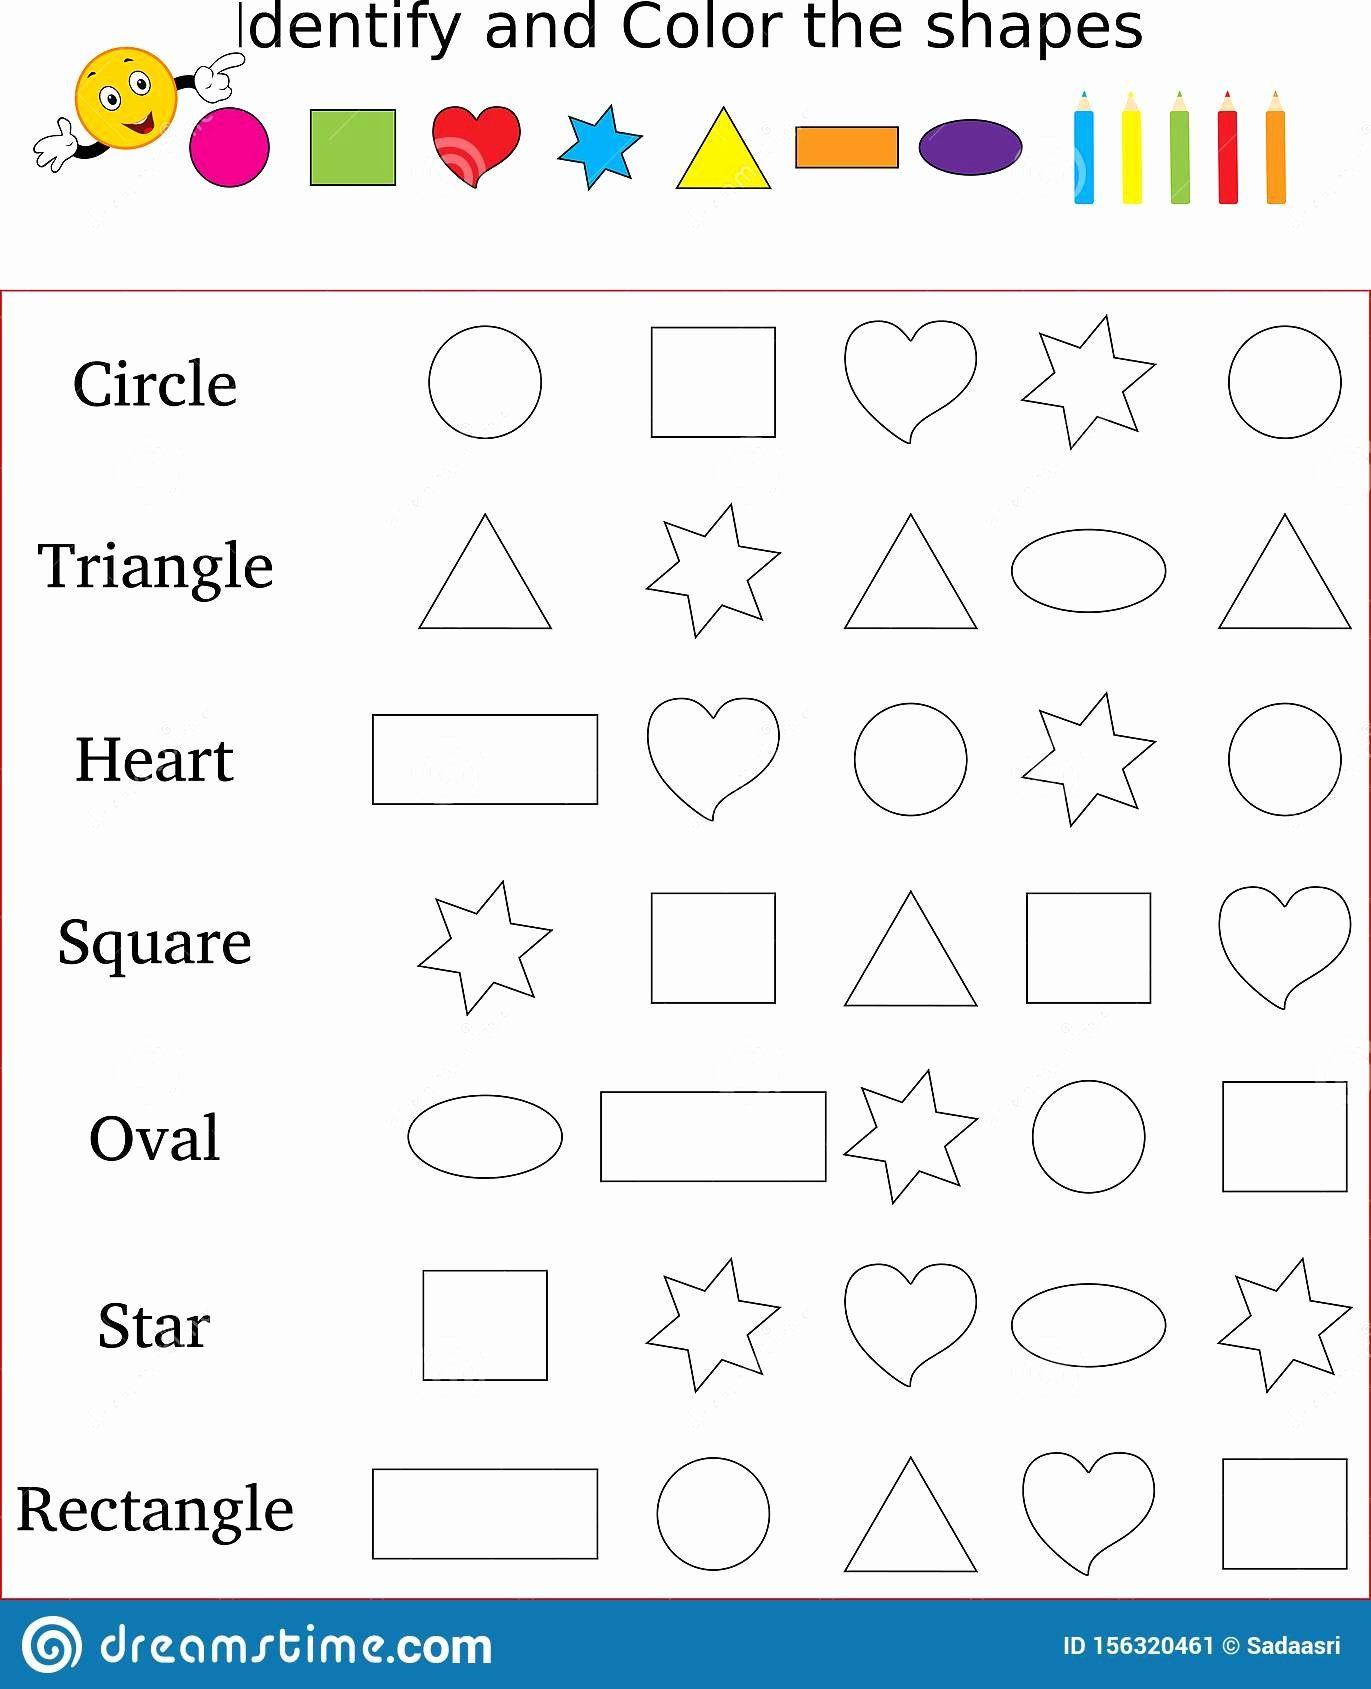 Colors and Shapes Worksheets for Preschoolers Fresh Identify and Color the Correct Shape Worksheet Stock Image